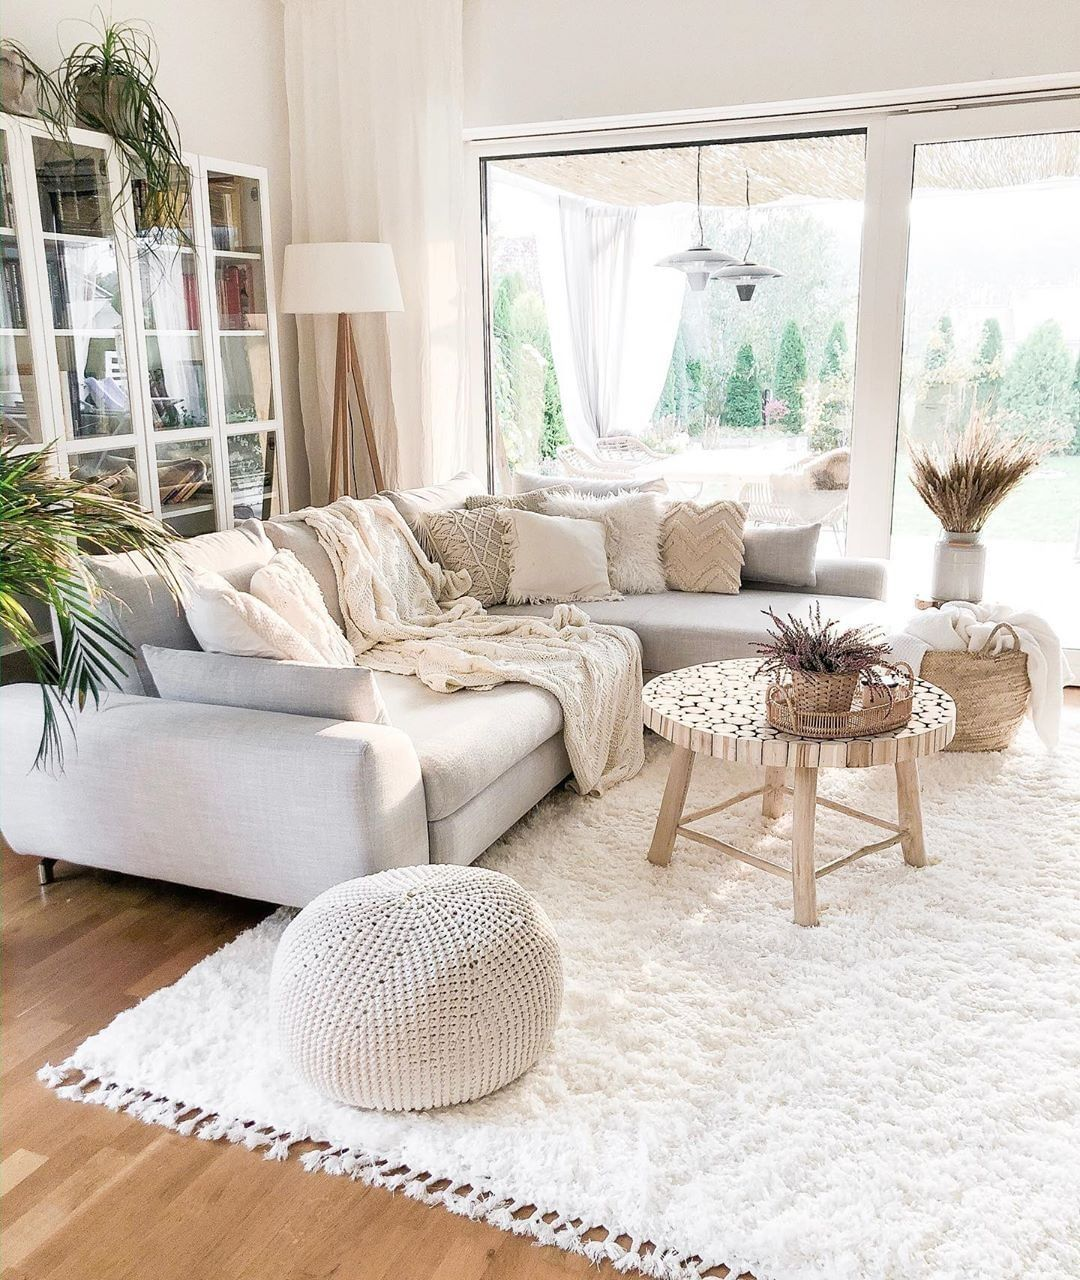 Via Bohemian Heaven What Do You Think Of A White Carpet Or Follow Us For More Boh In 2020 Living Room Designs Bright Living Room Living Room Scandinavian #white #carpet #for #living #room